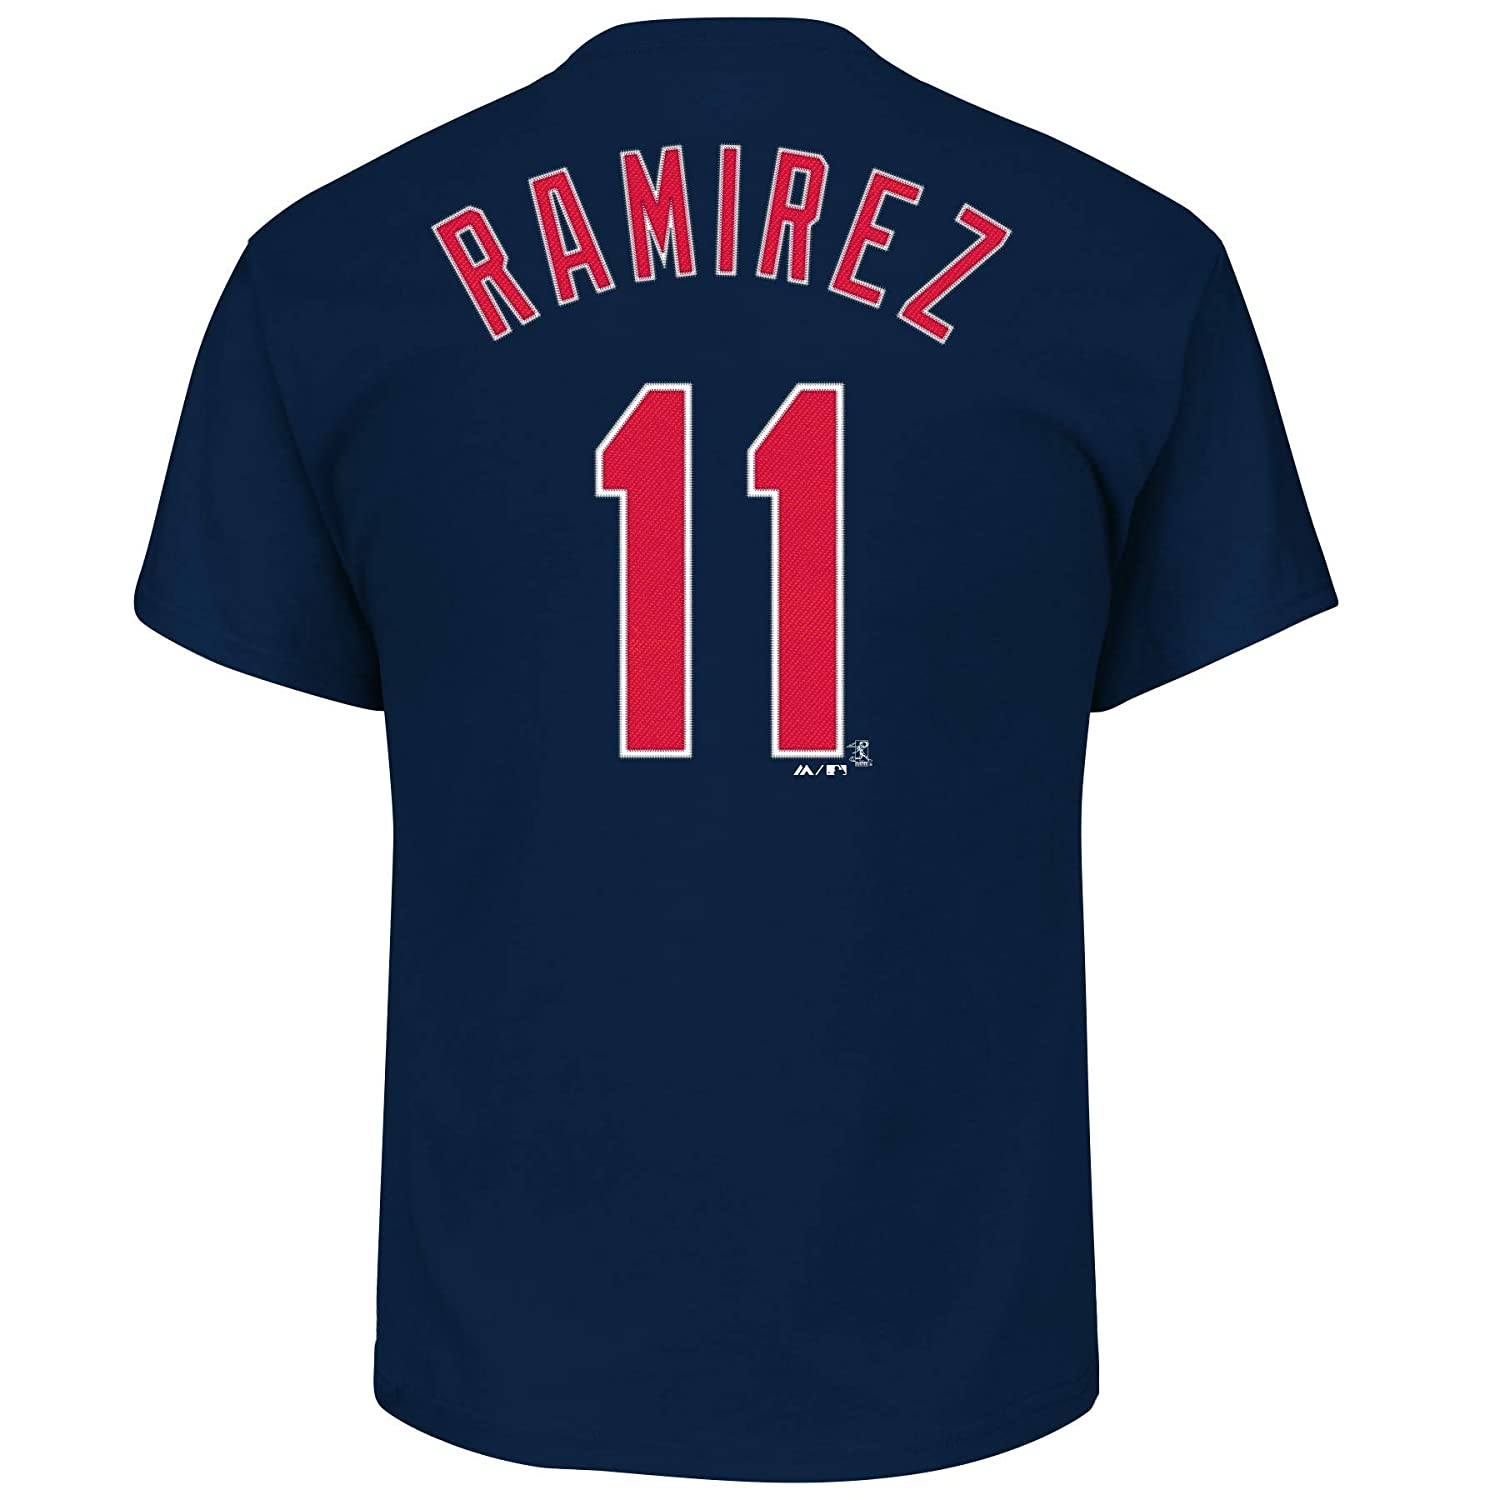 buy popular c495a 1841a Outerstuff Jose Ramirez Cleveland Indians #11 Youth Player Name & Number  T-Shirt Navy